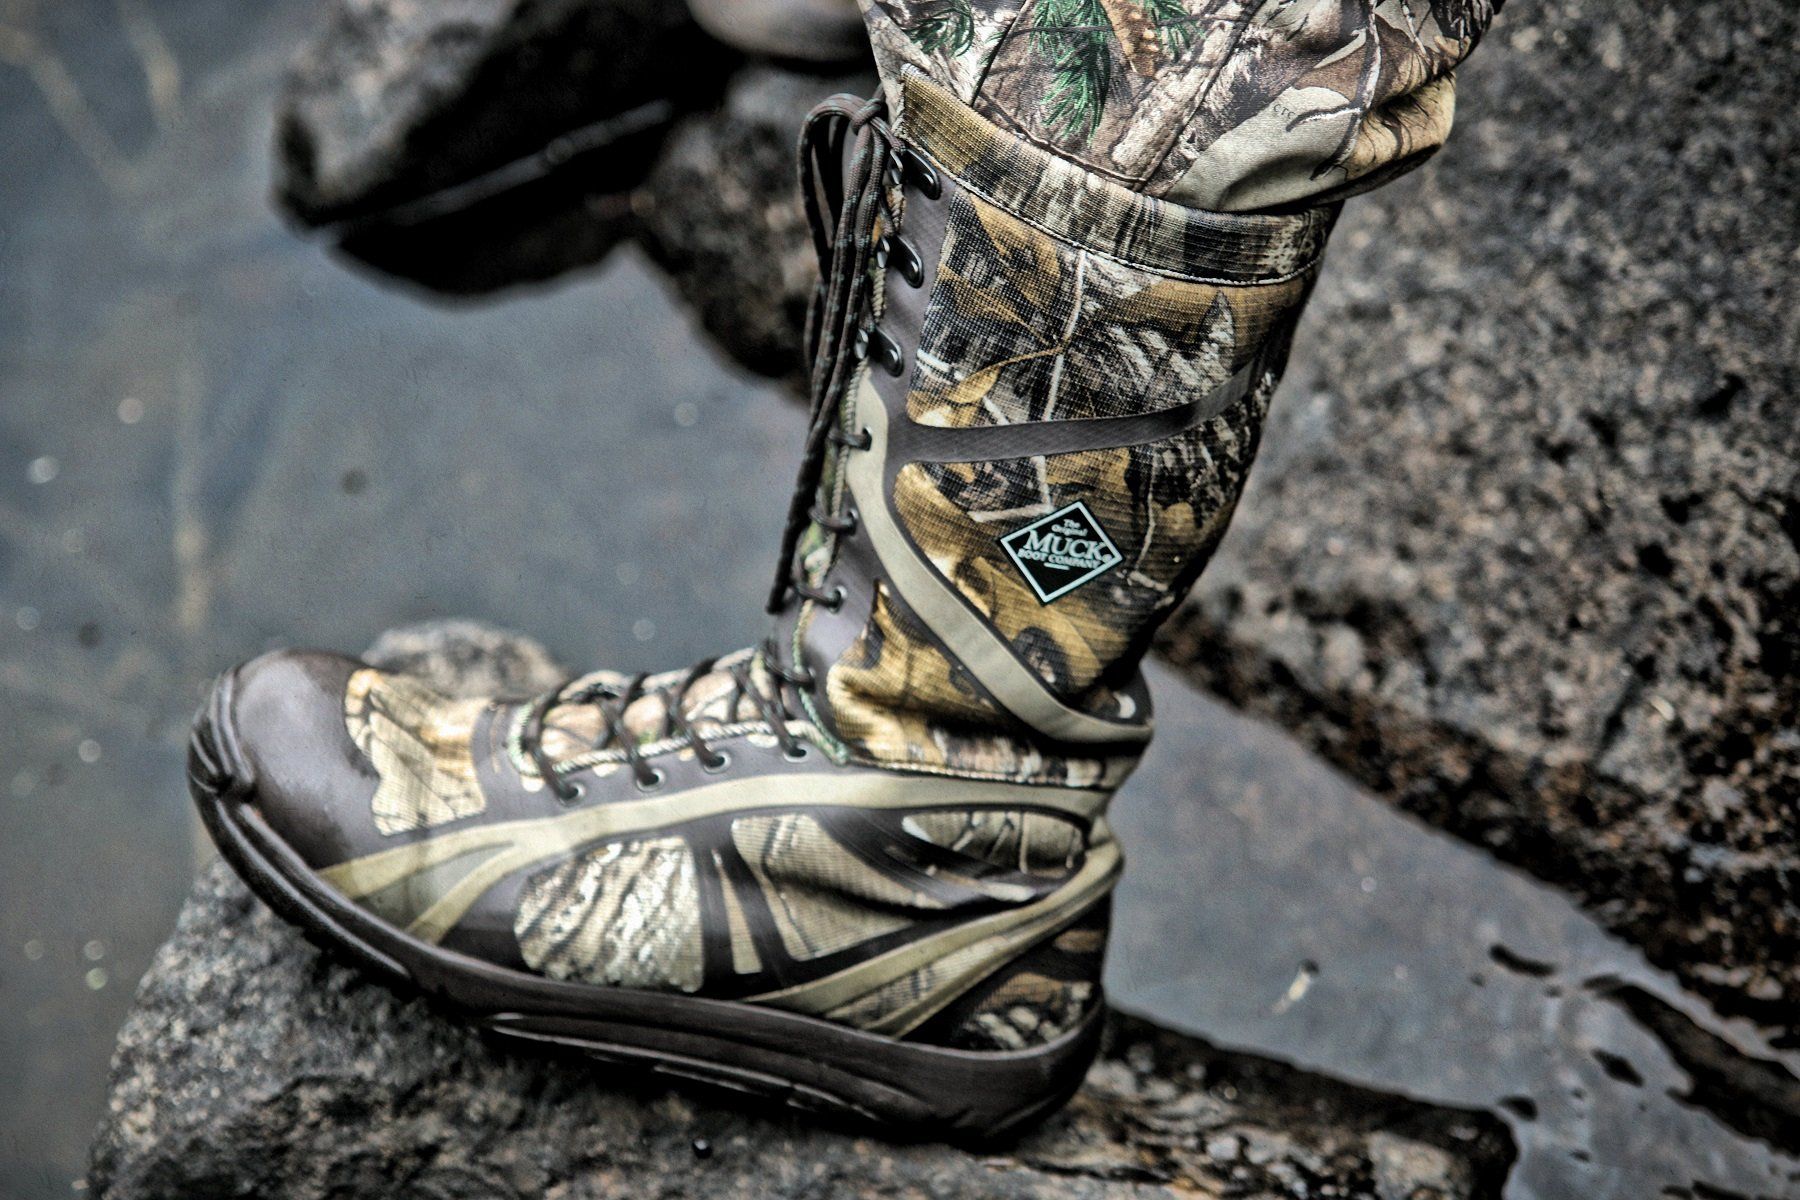 Pursuit Shadow Tall Camo Hunting Boot By Muck Boot Company